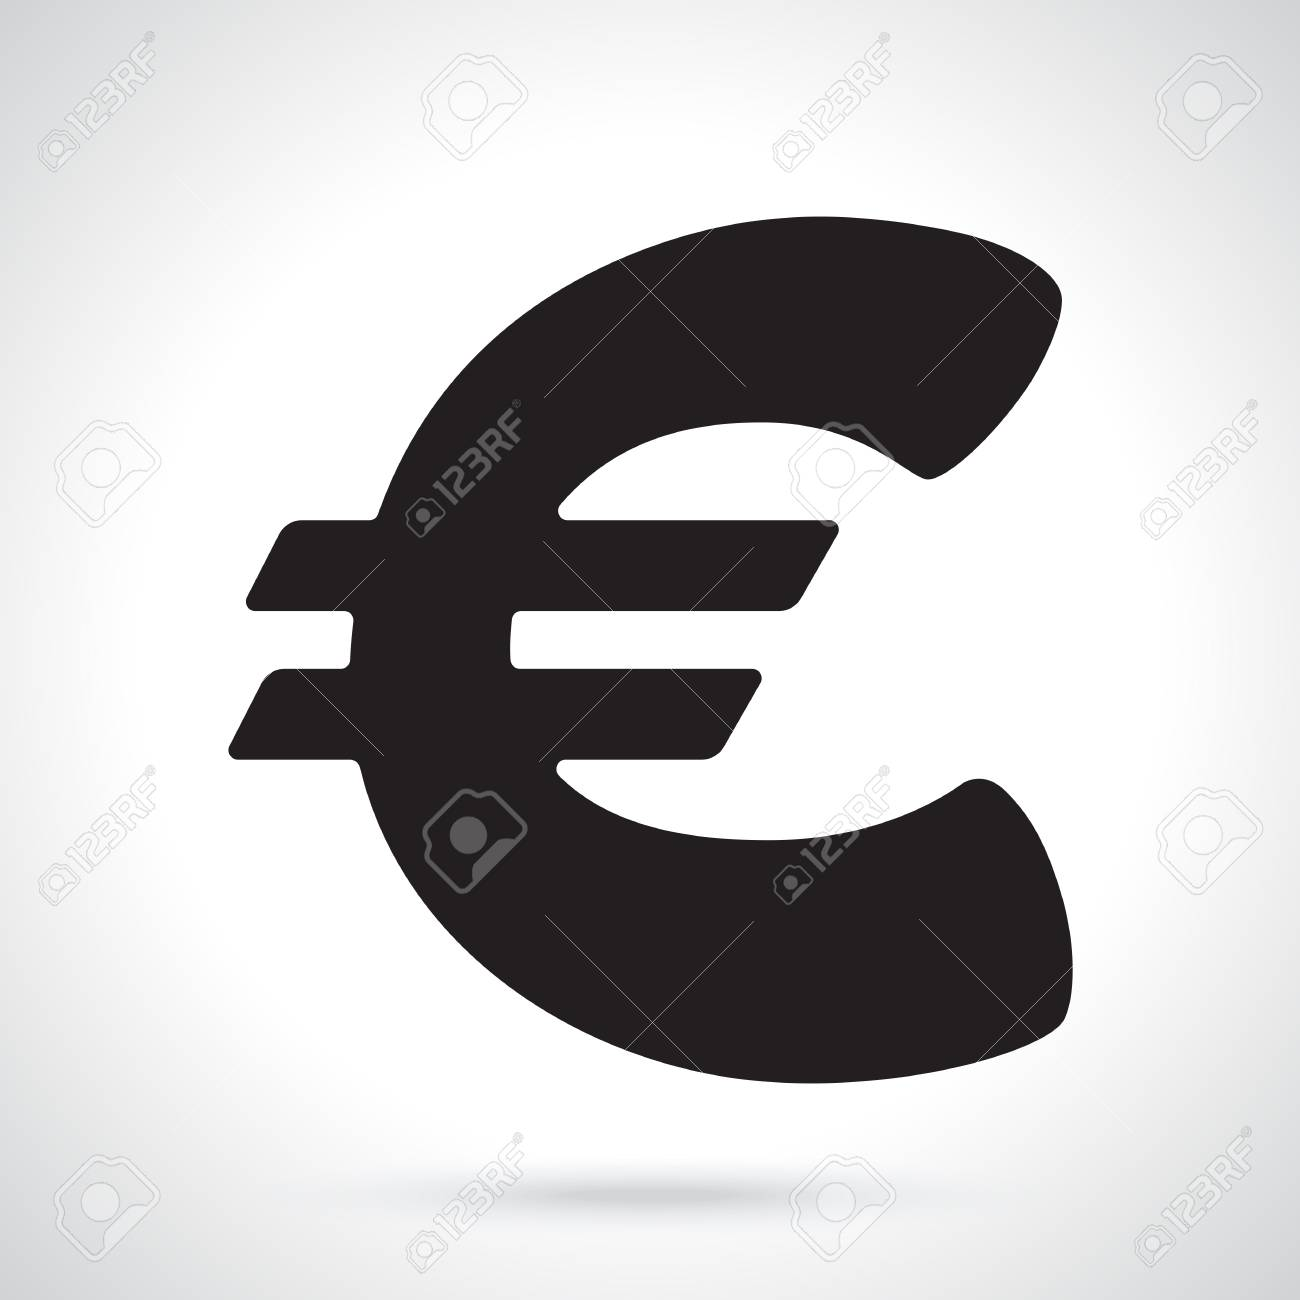 Vector Illustration Silhouette Of Euro Sign The Symbol Of World